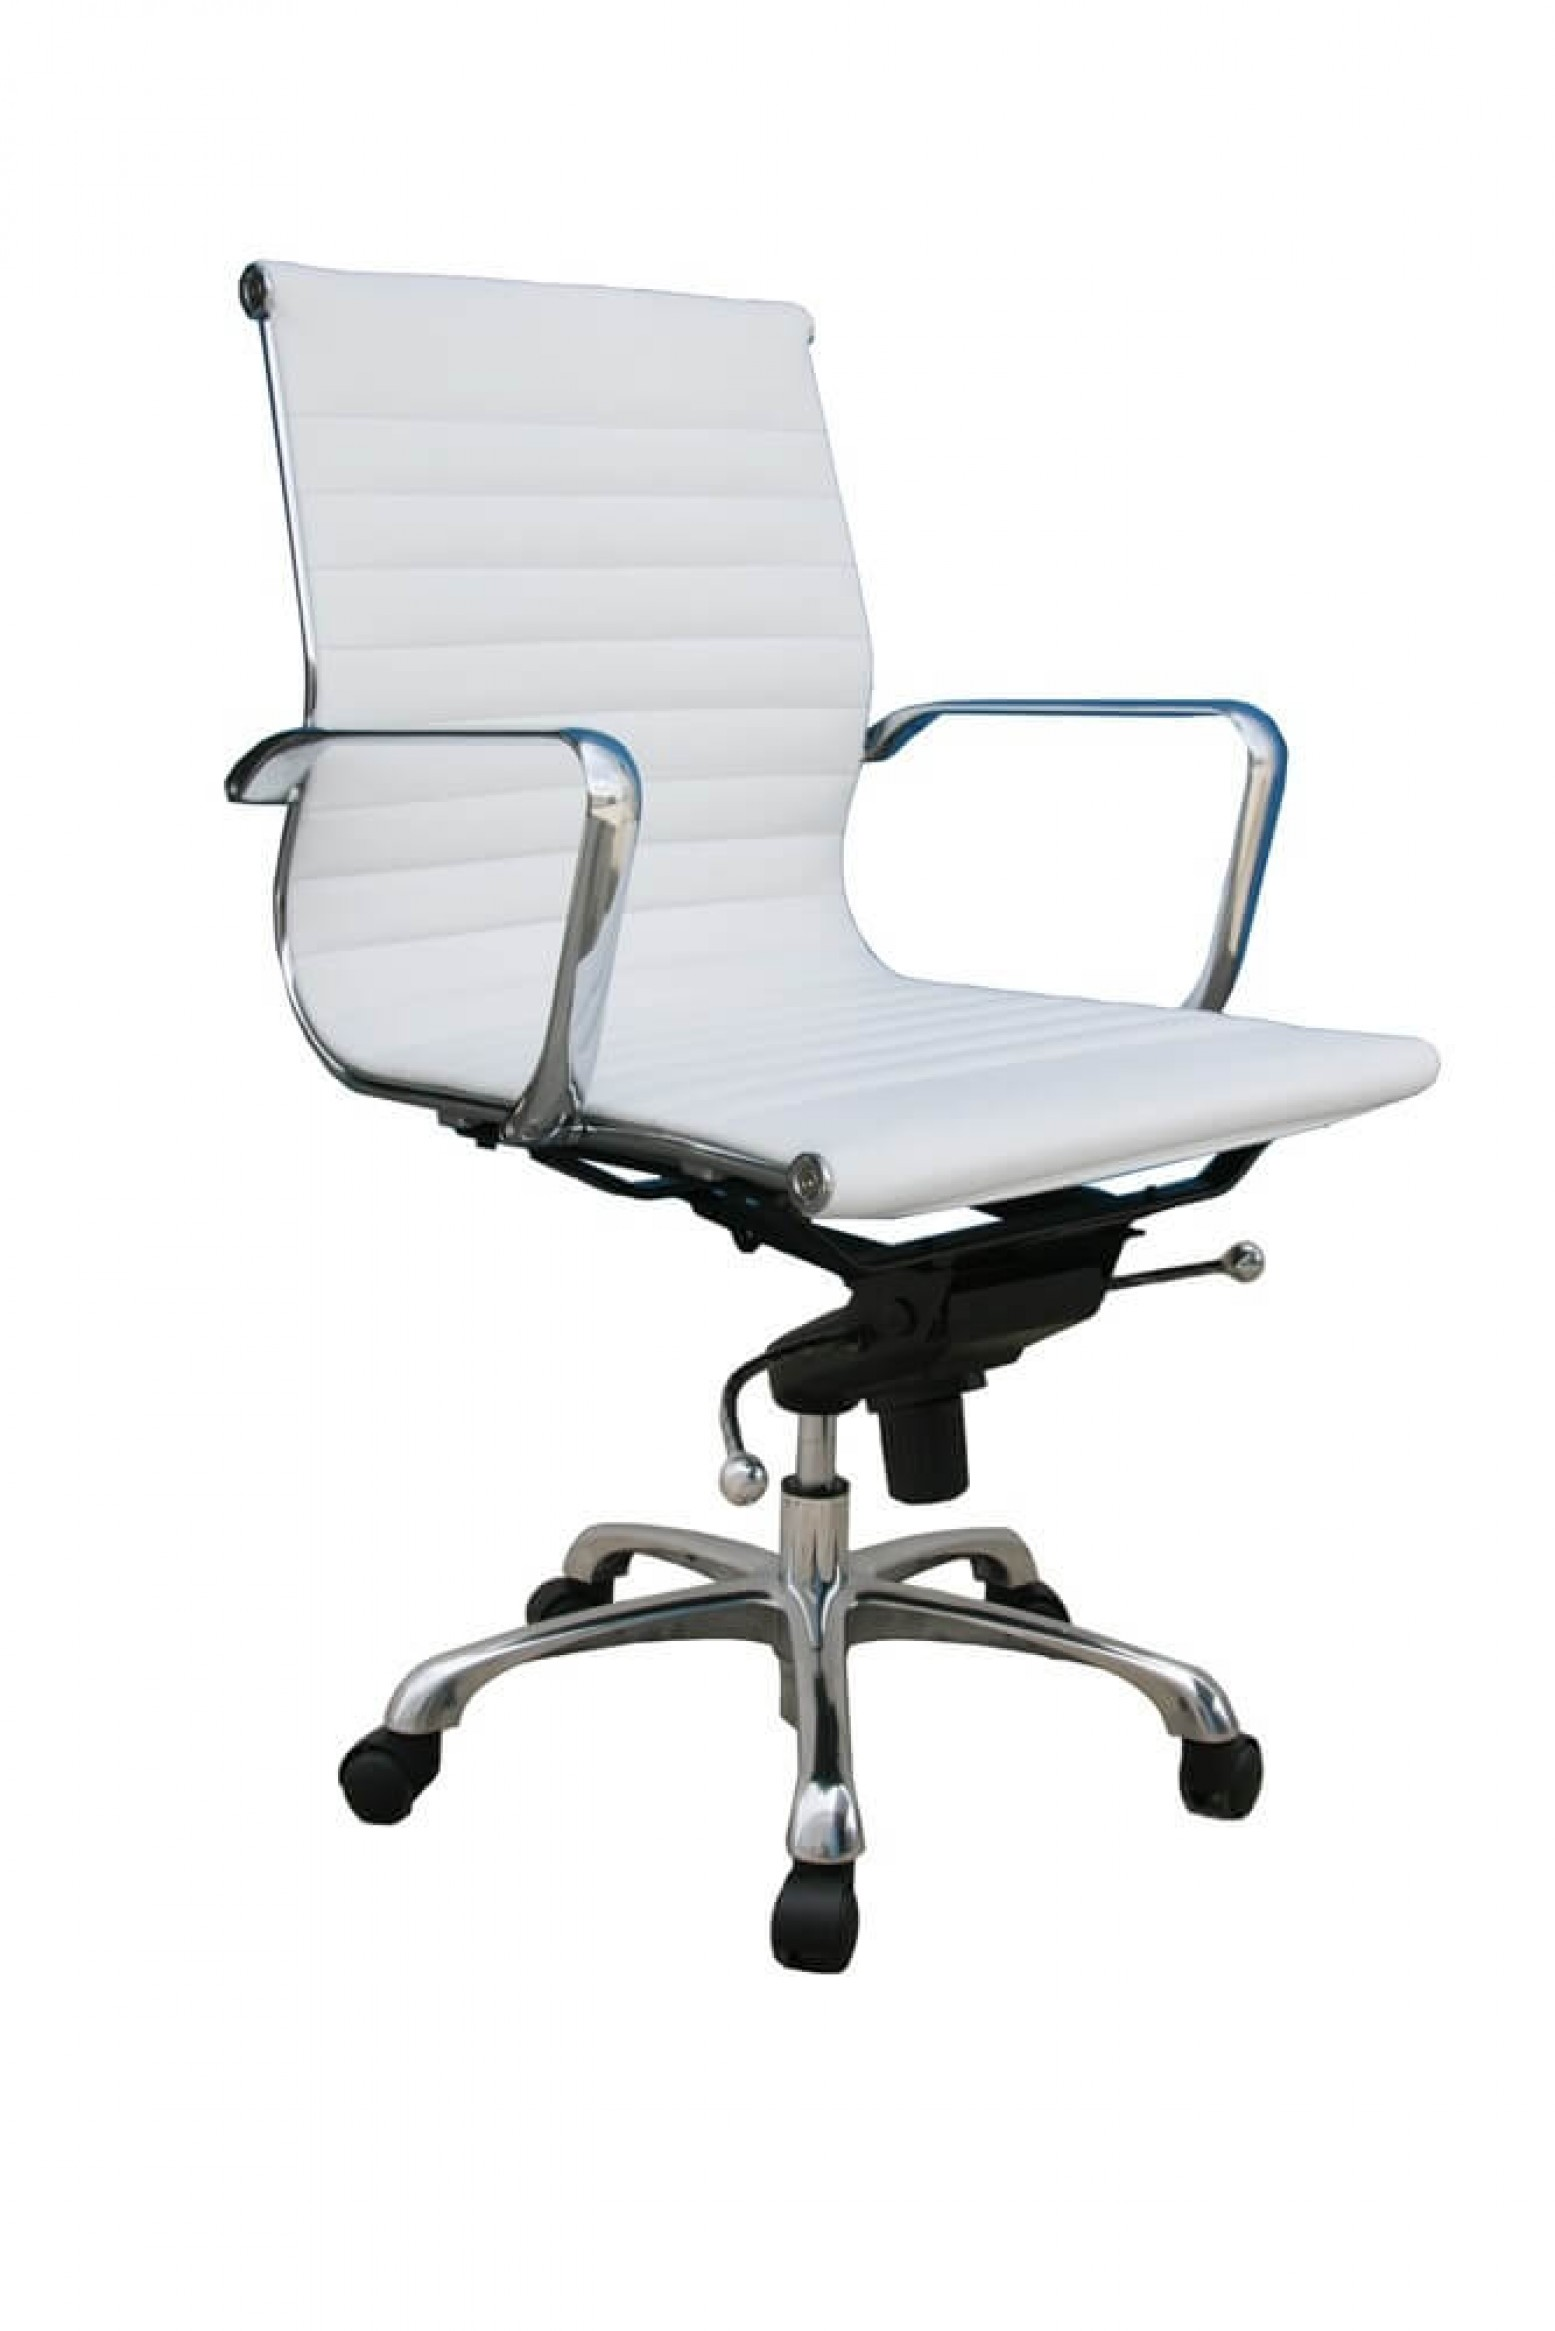 Comfy Low Back Adjustable Leather Swivel Office Chair By J